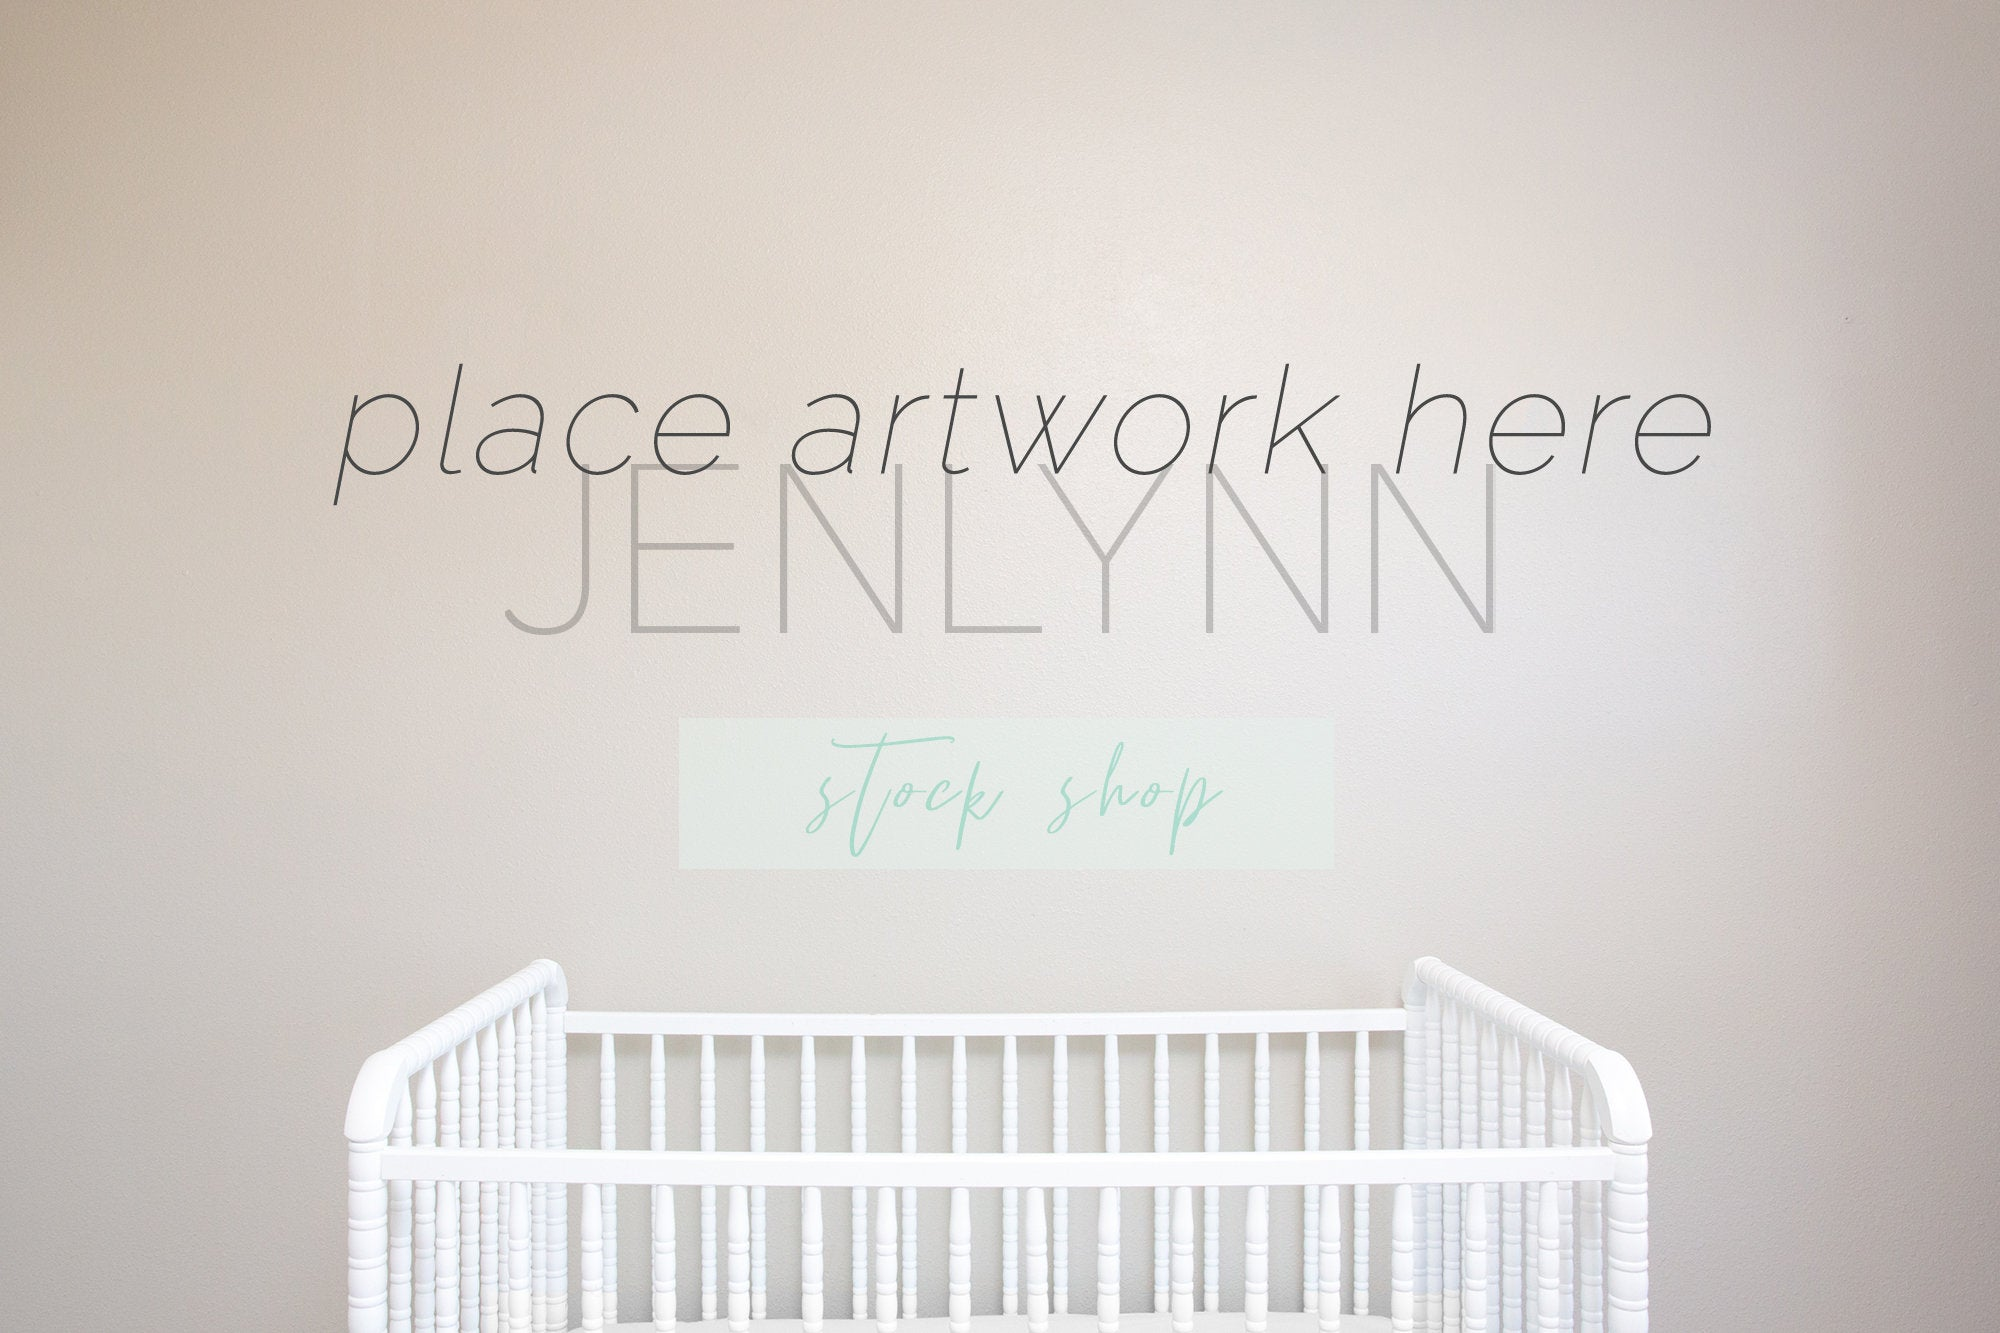 Nursery Wall Mockup, Crib Mockup, Styled Stock Photo, Digital Mockup, blank wall mockup, stock photography, interior mockup, kids room mock